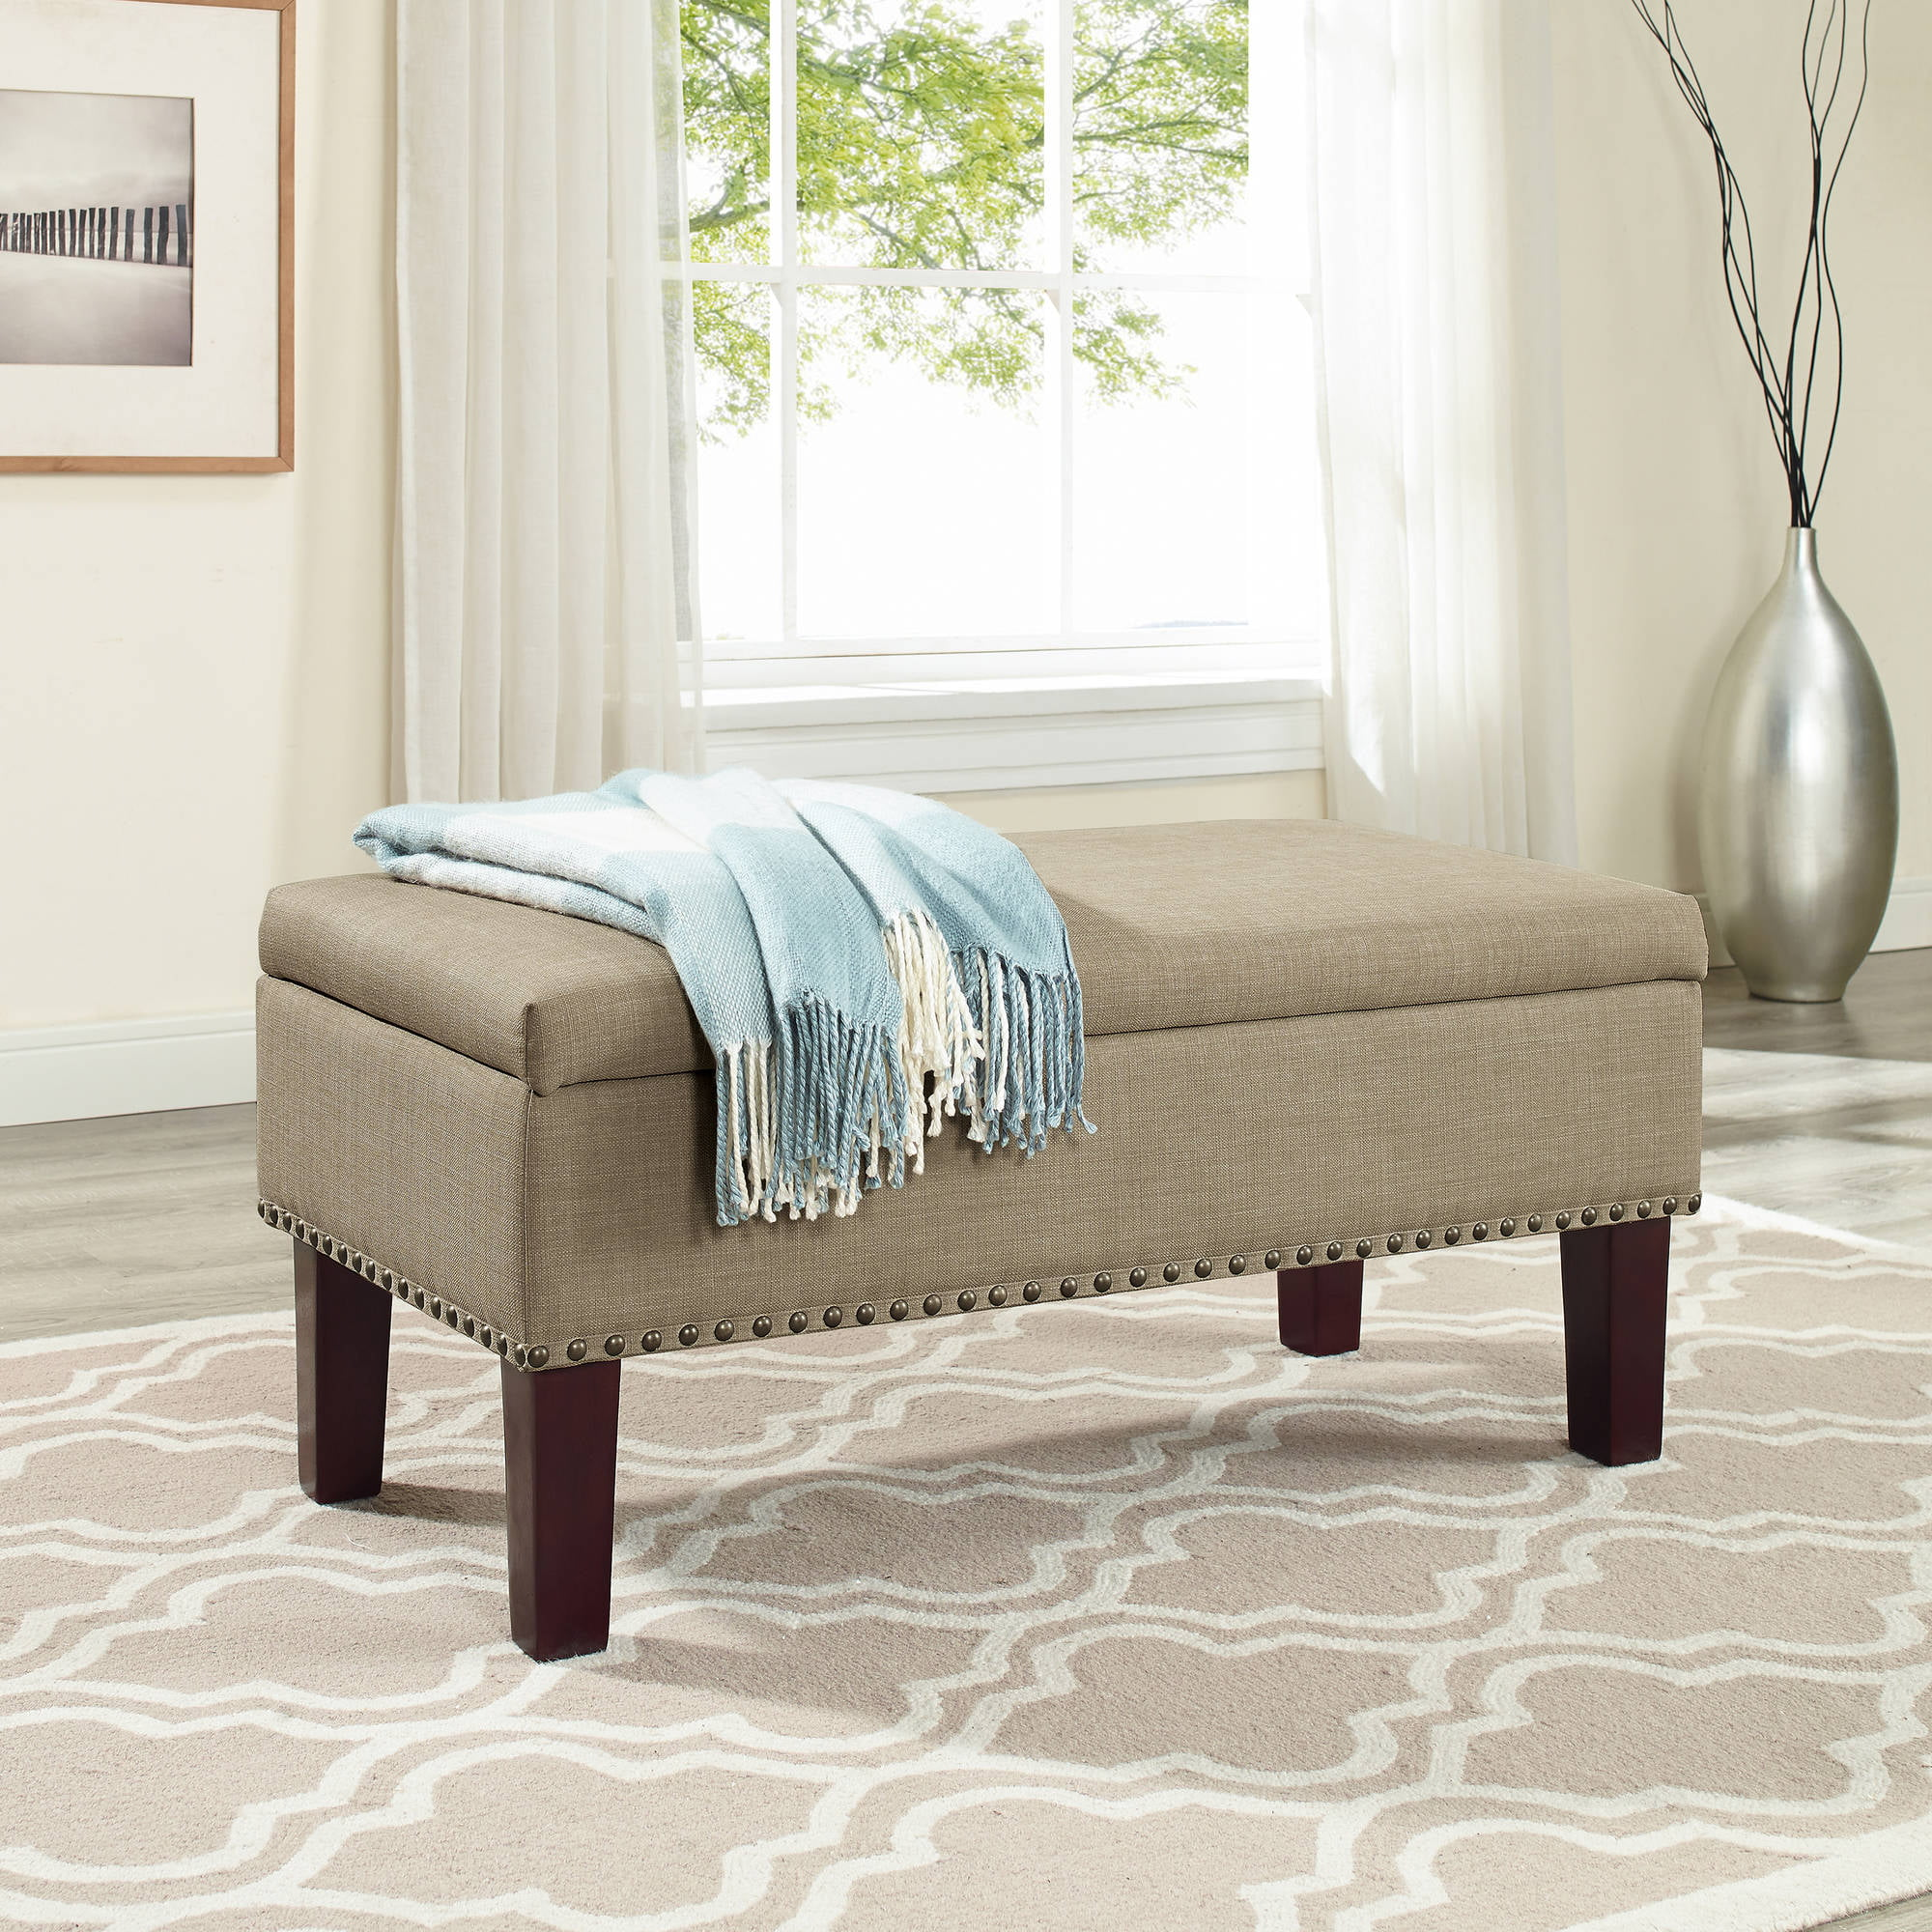 Better Homes And Gardens Grayson Ottoman Storage Bench   Walmart.com